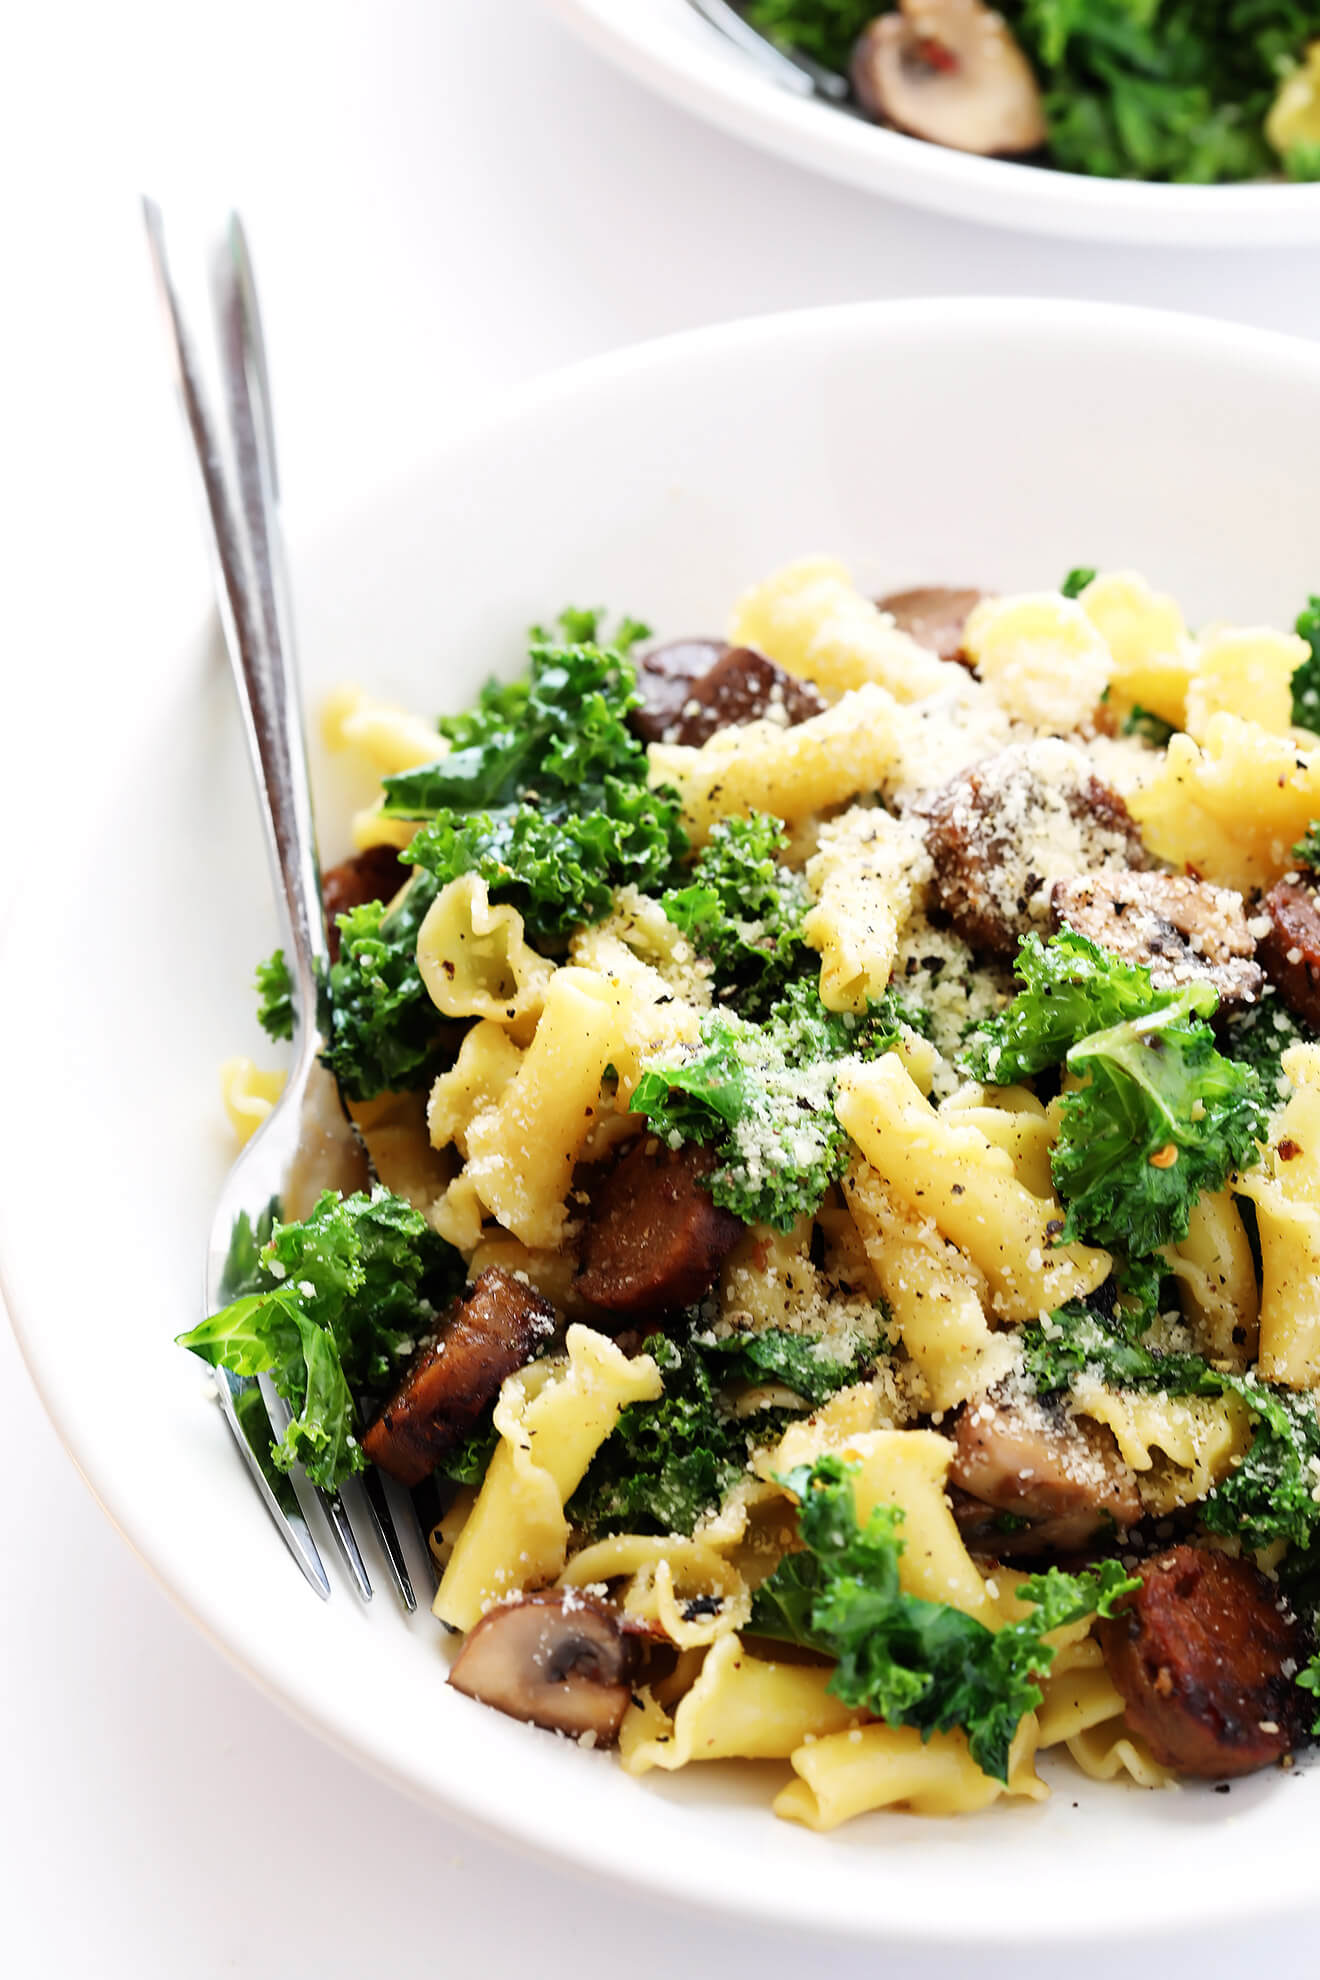 Watch 5 Easy Recipes to Make With Kale video